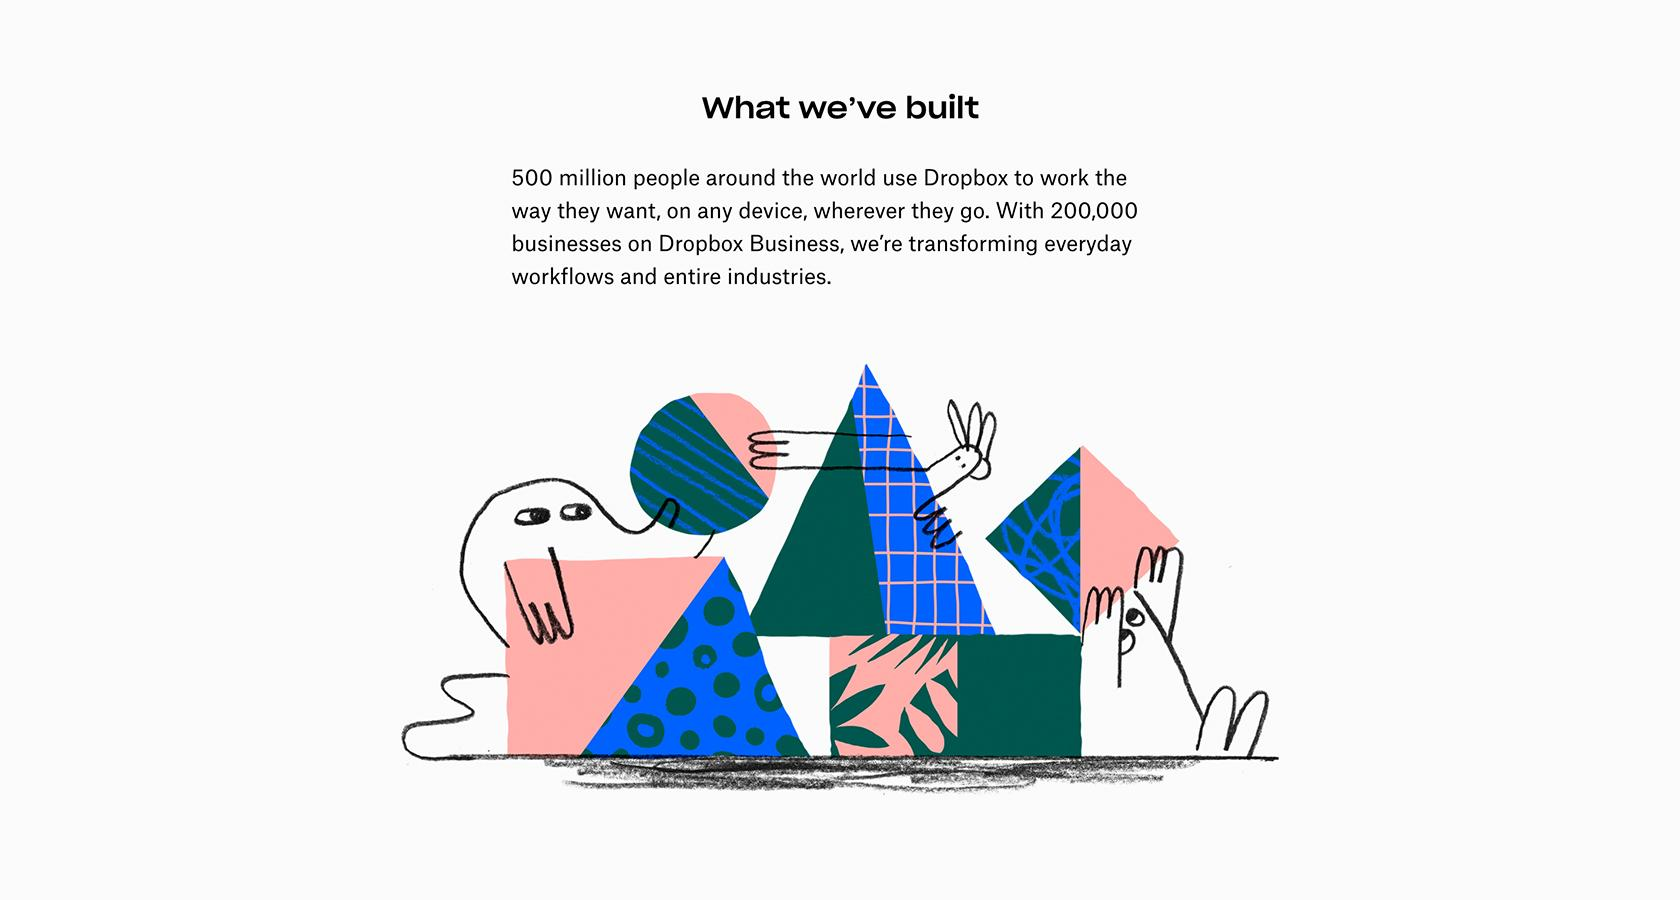 Dropbox brand website illustrations by Justin Tran